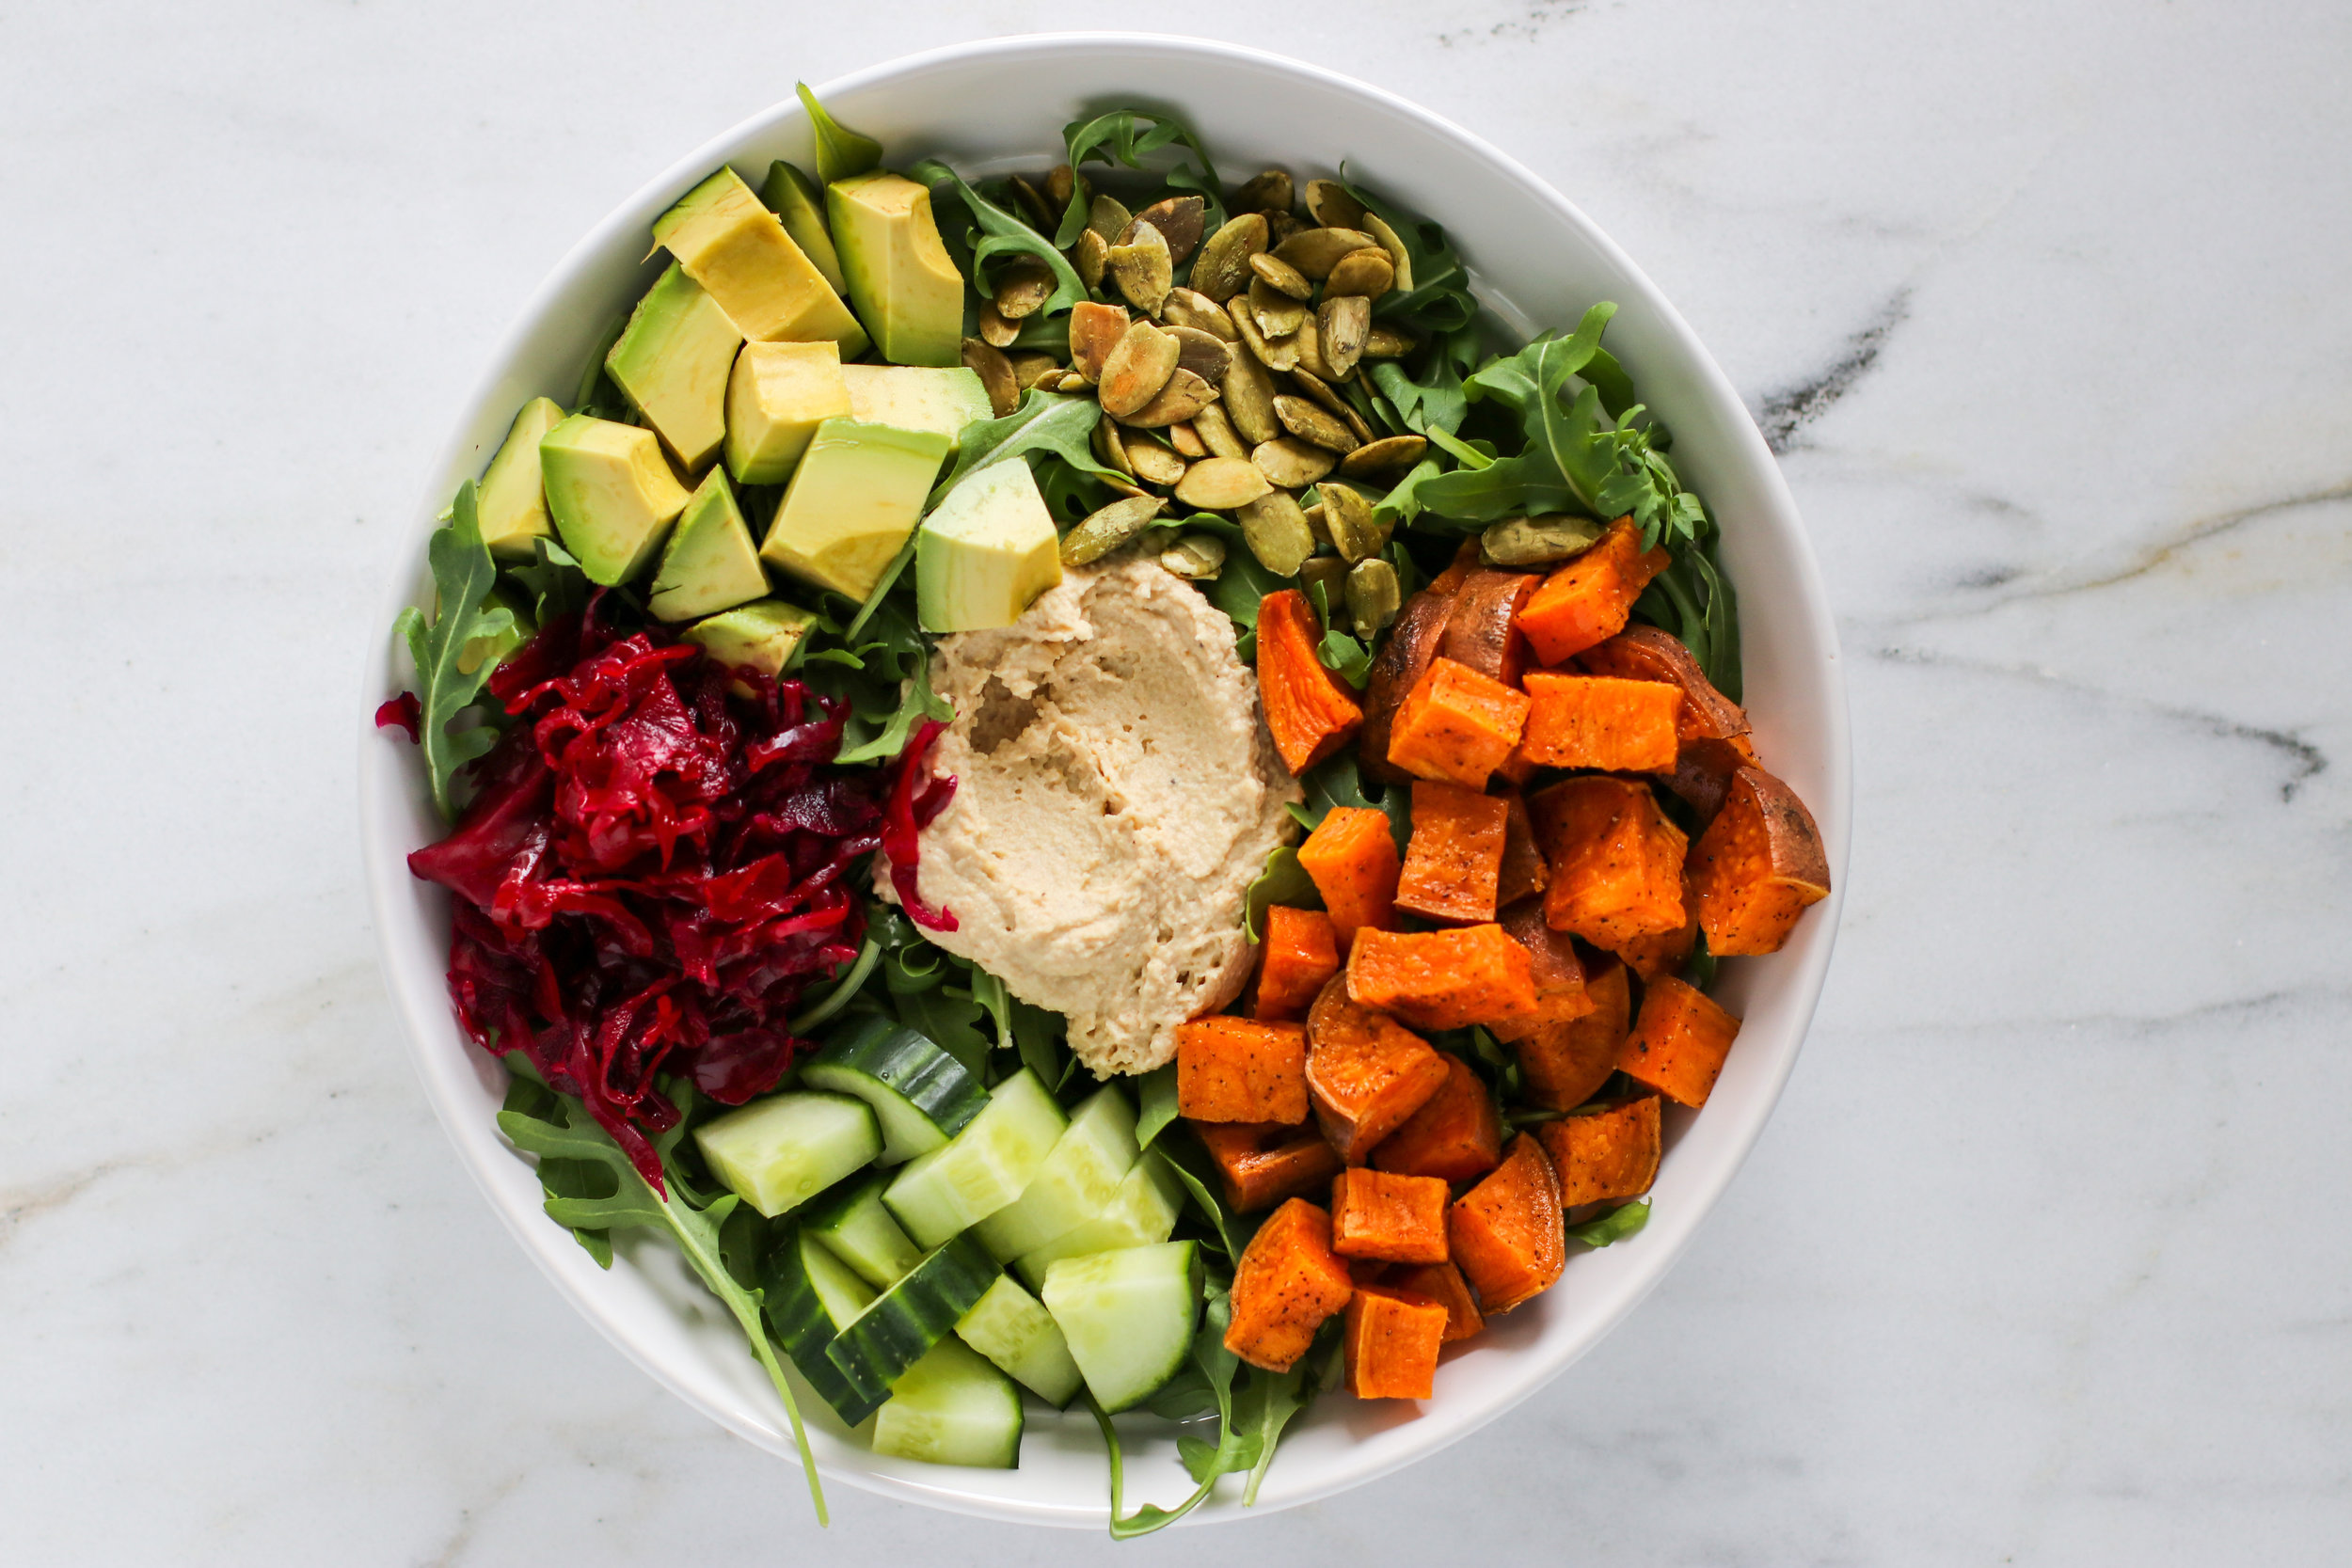 Salad Bowl #2 - An arugula base topped with avocado, pumpkin seeds, roasted sweet potatoes, cucumber, ruby kraut, and a big dollop of hummus.I dress my salads very lightly, and I find that the hummus, avocado, and kraut usually provide enough to coat the rest of the veggies.